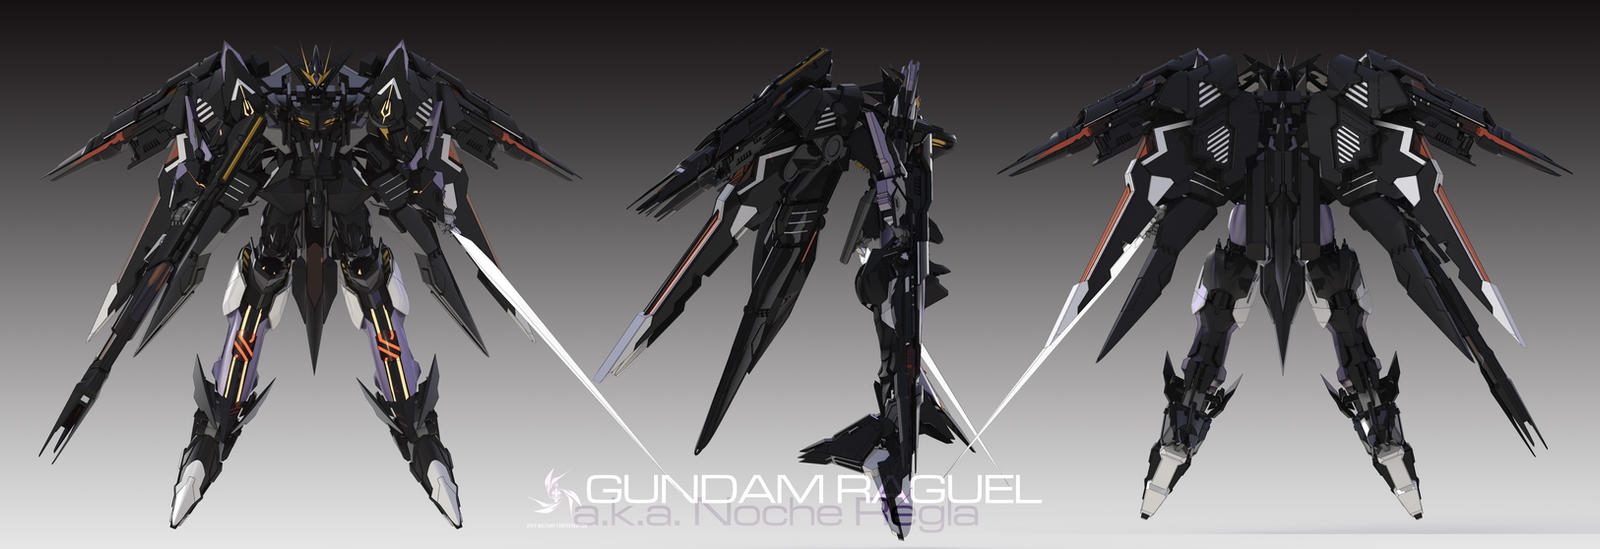 Gundam Raguel by masarebelth